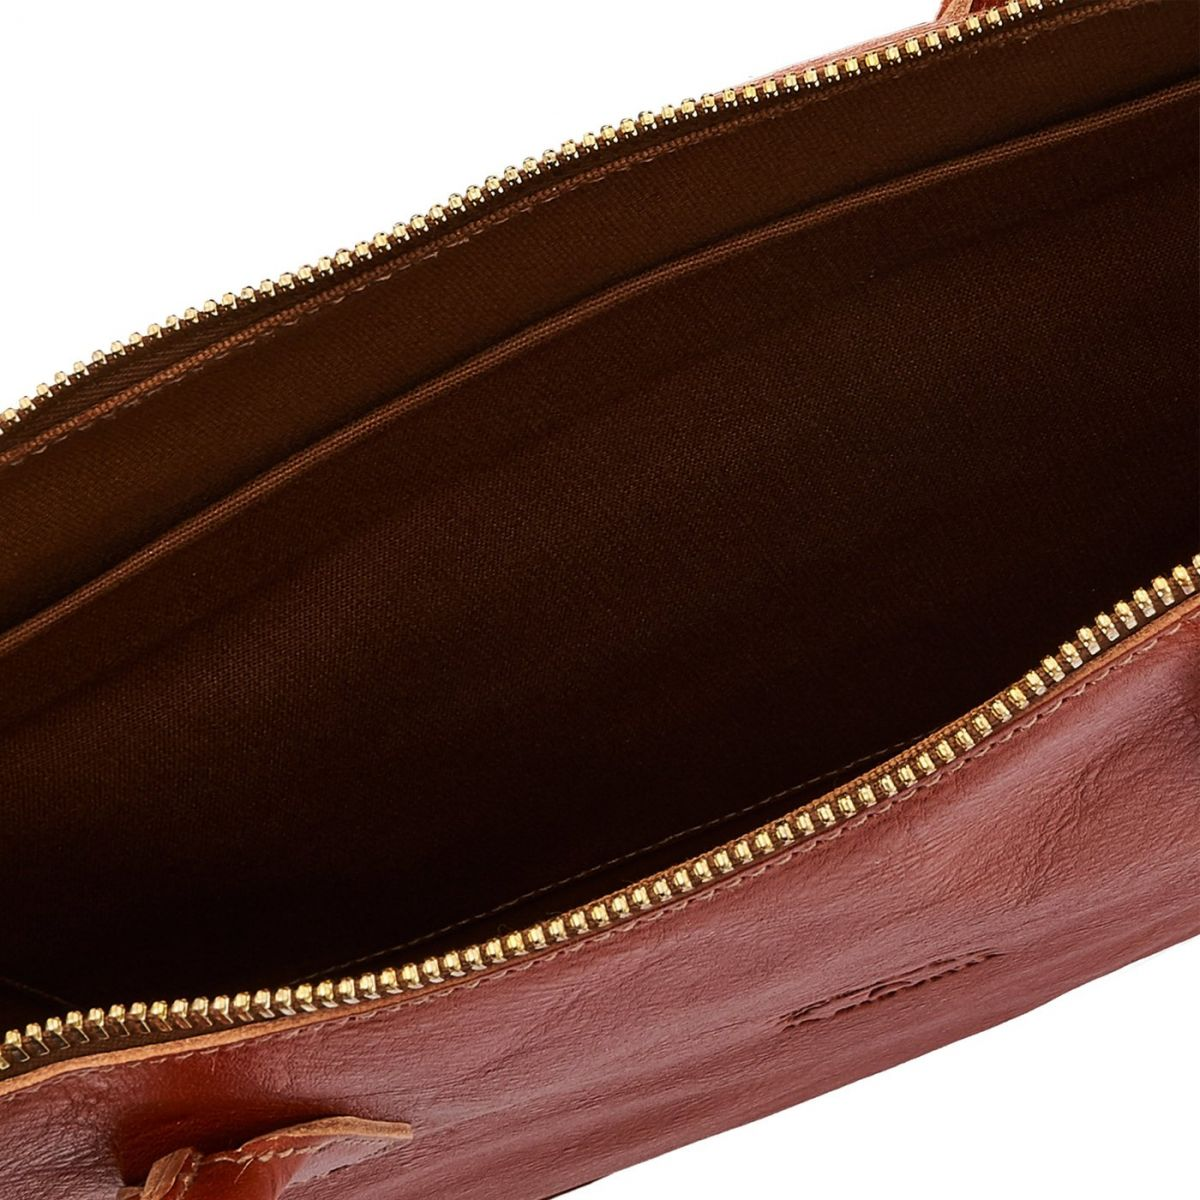 Briefcase Michelangelo in Cowhide Double Leather BBC035 color Caramel | Details